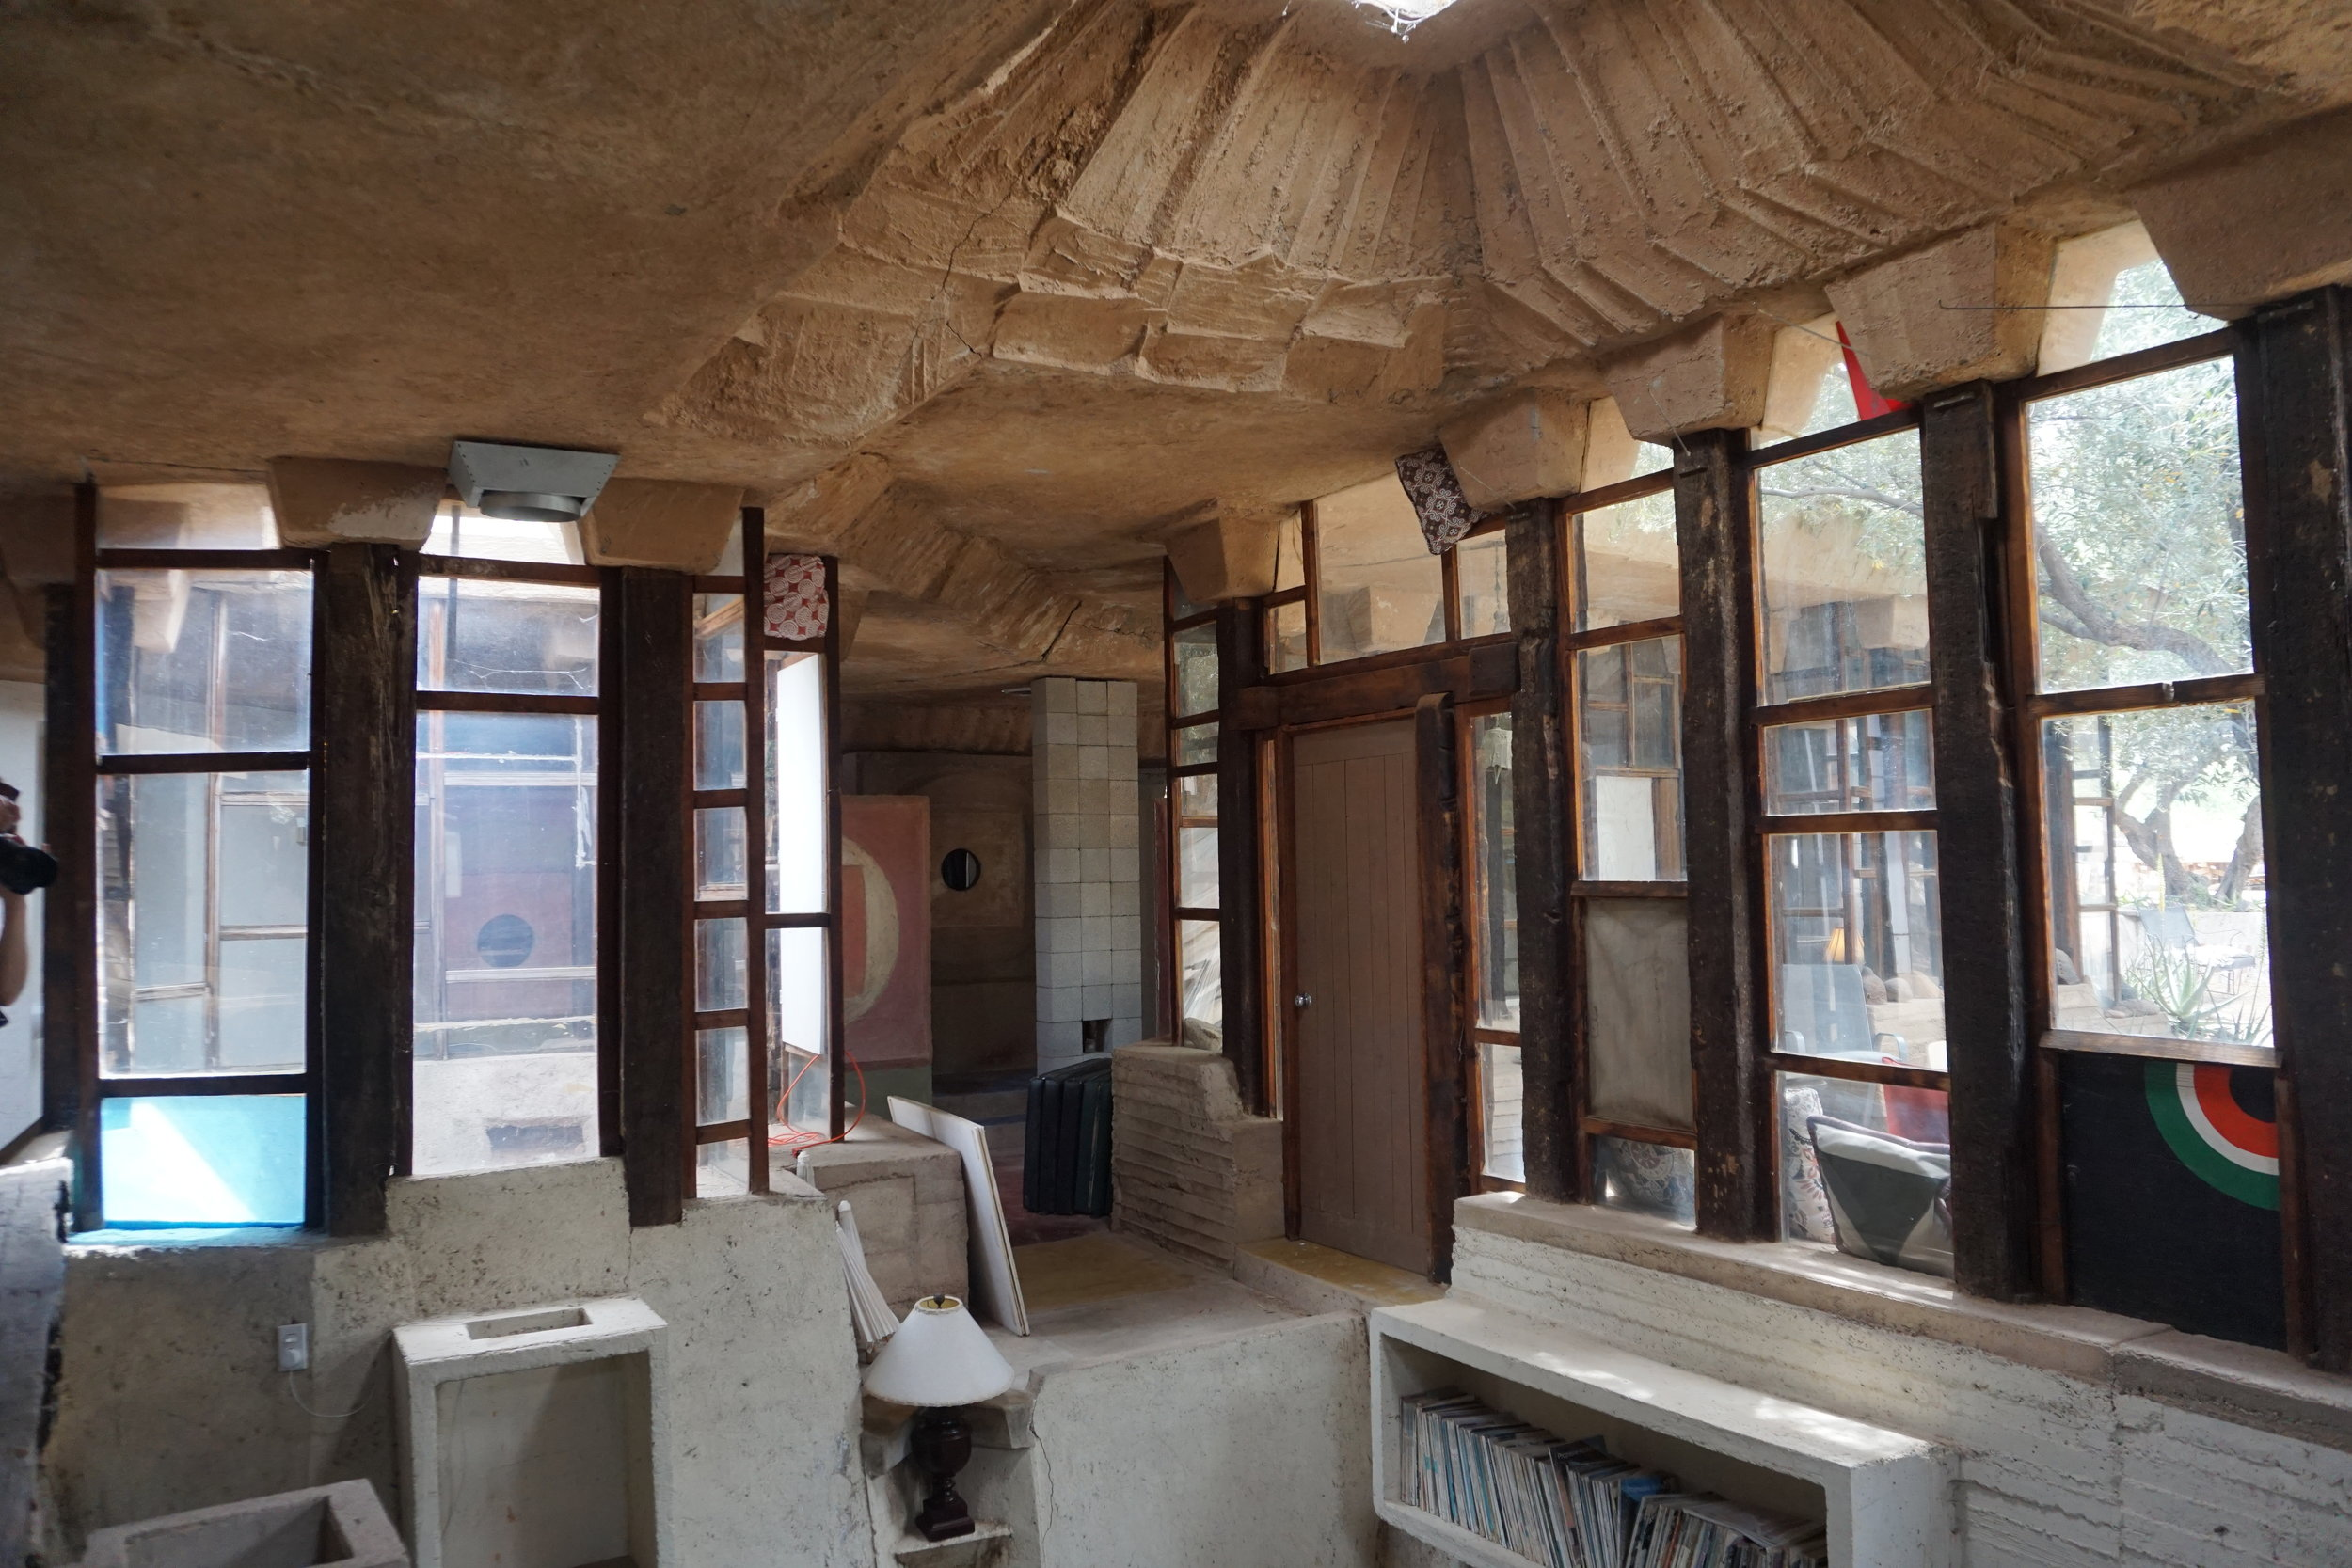 Artists do apprenticeships here and live on-site